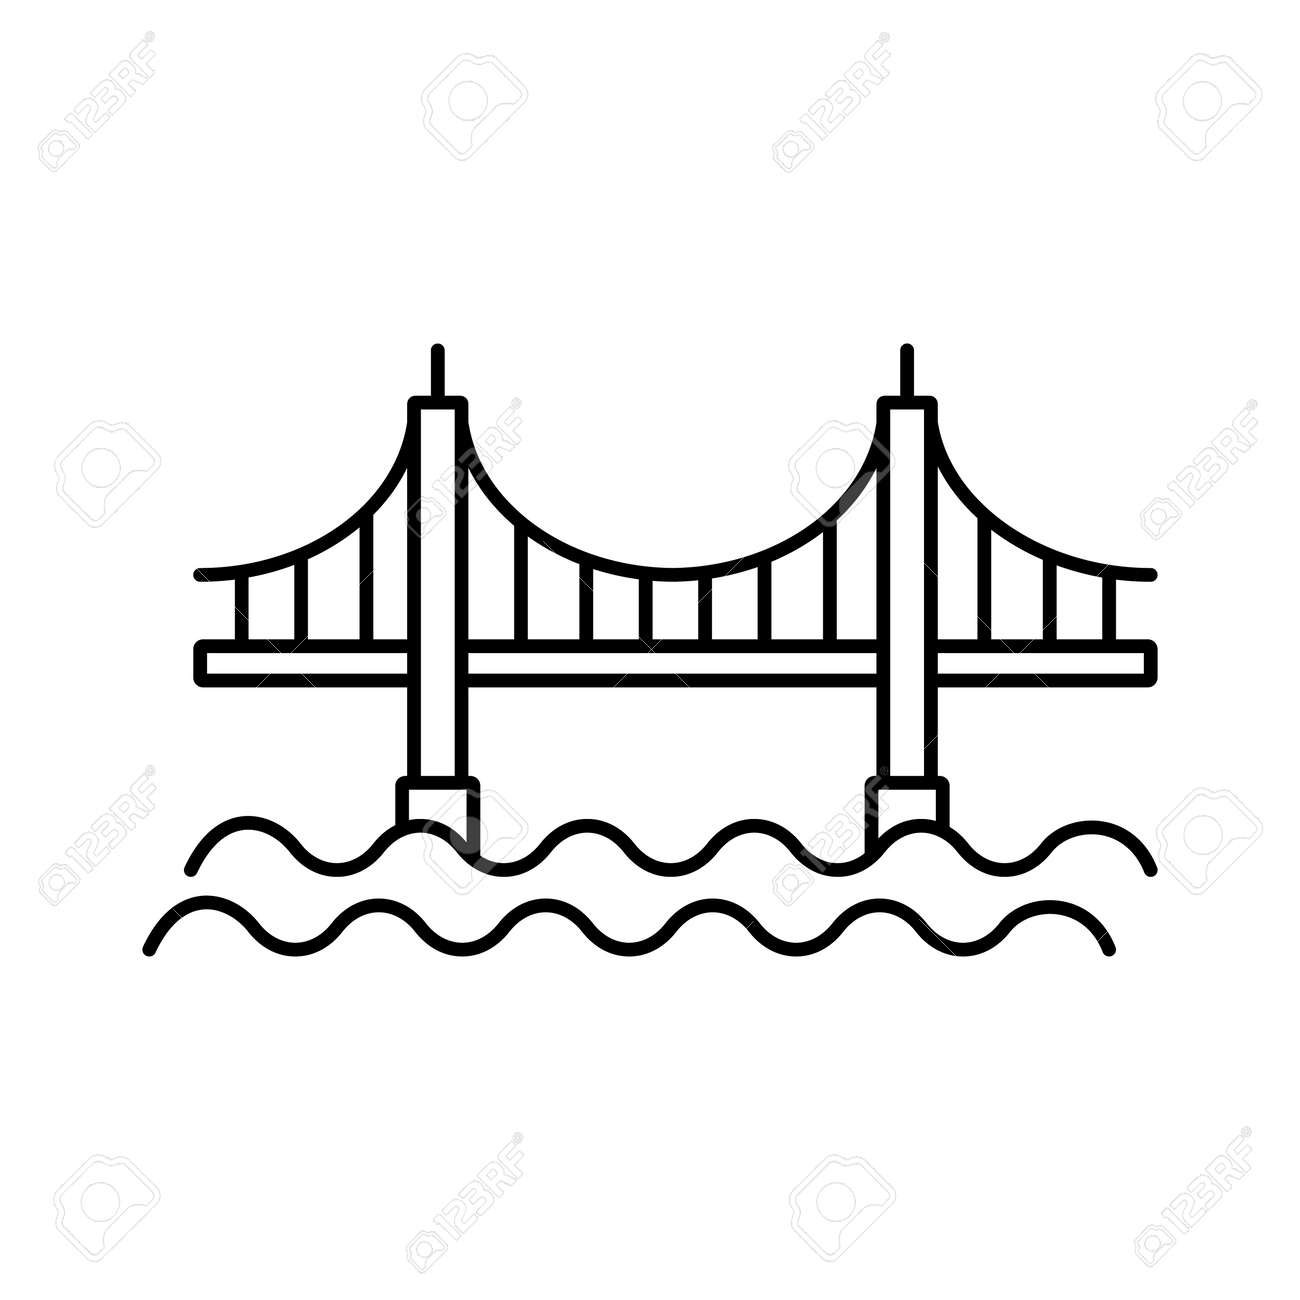 bridge icon element of building icon for mobile concept and web apps. Premium icon on white background. - 157173538